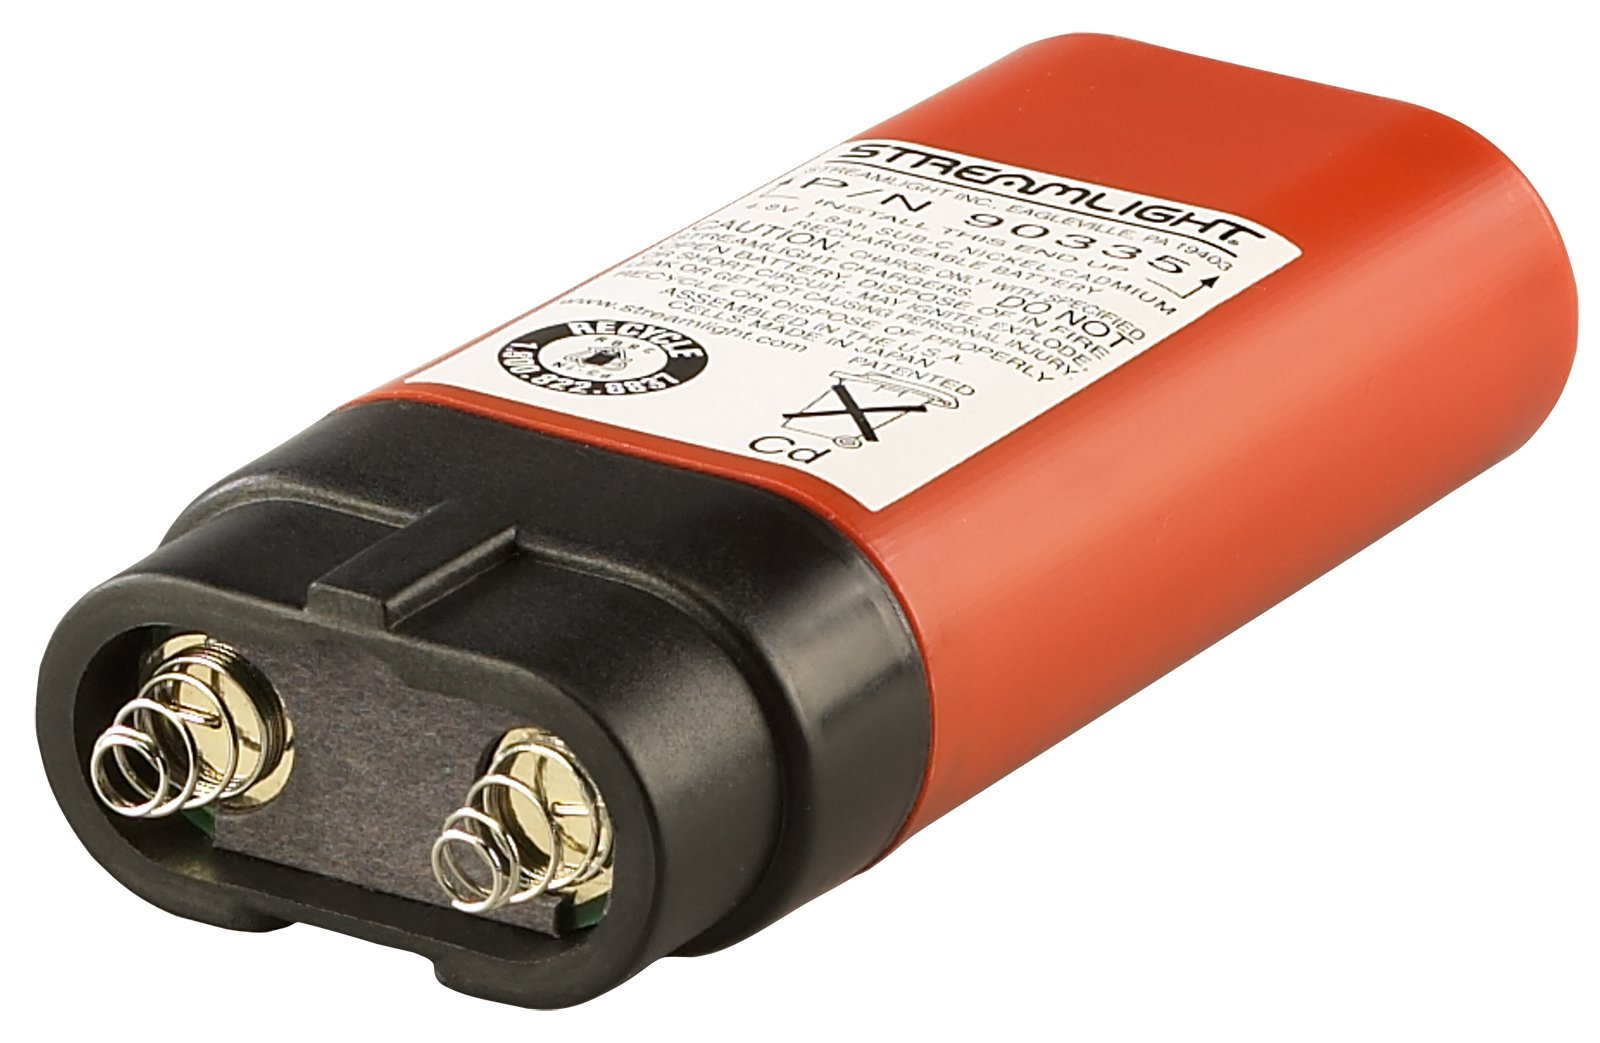 Streamlight 91757 Knucklehead HAZ-LO Rechargeable Spot Light with 120-volt AC/12-volt DC Charger, Orange by Streamlight (Image #3)